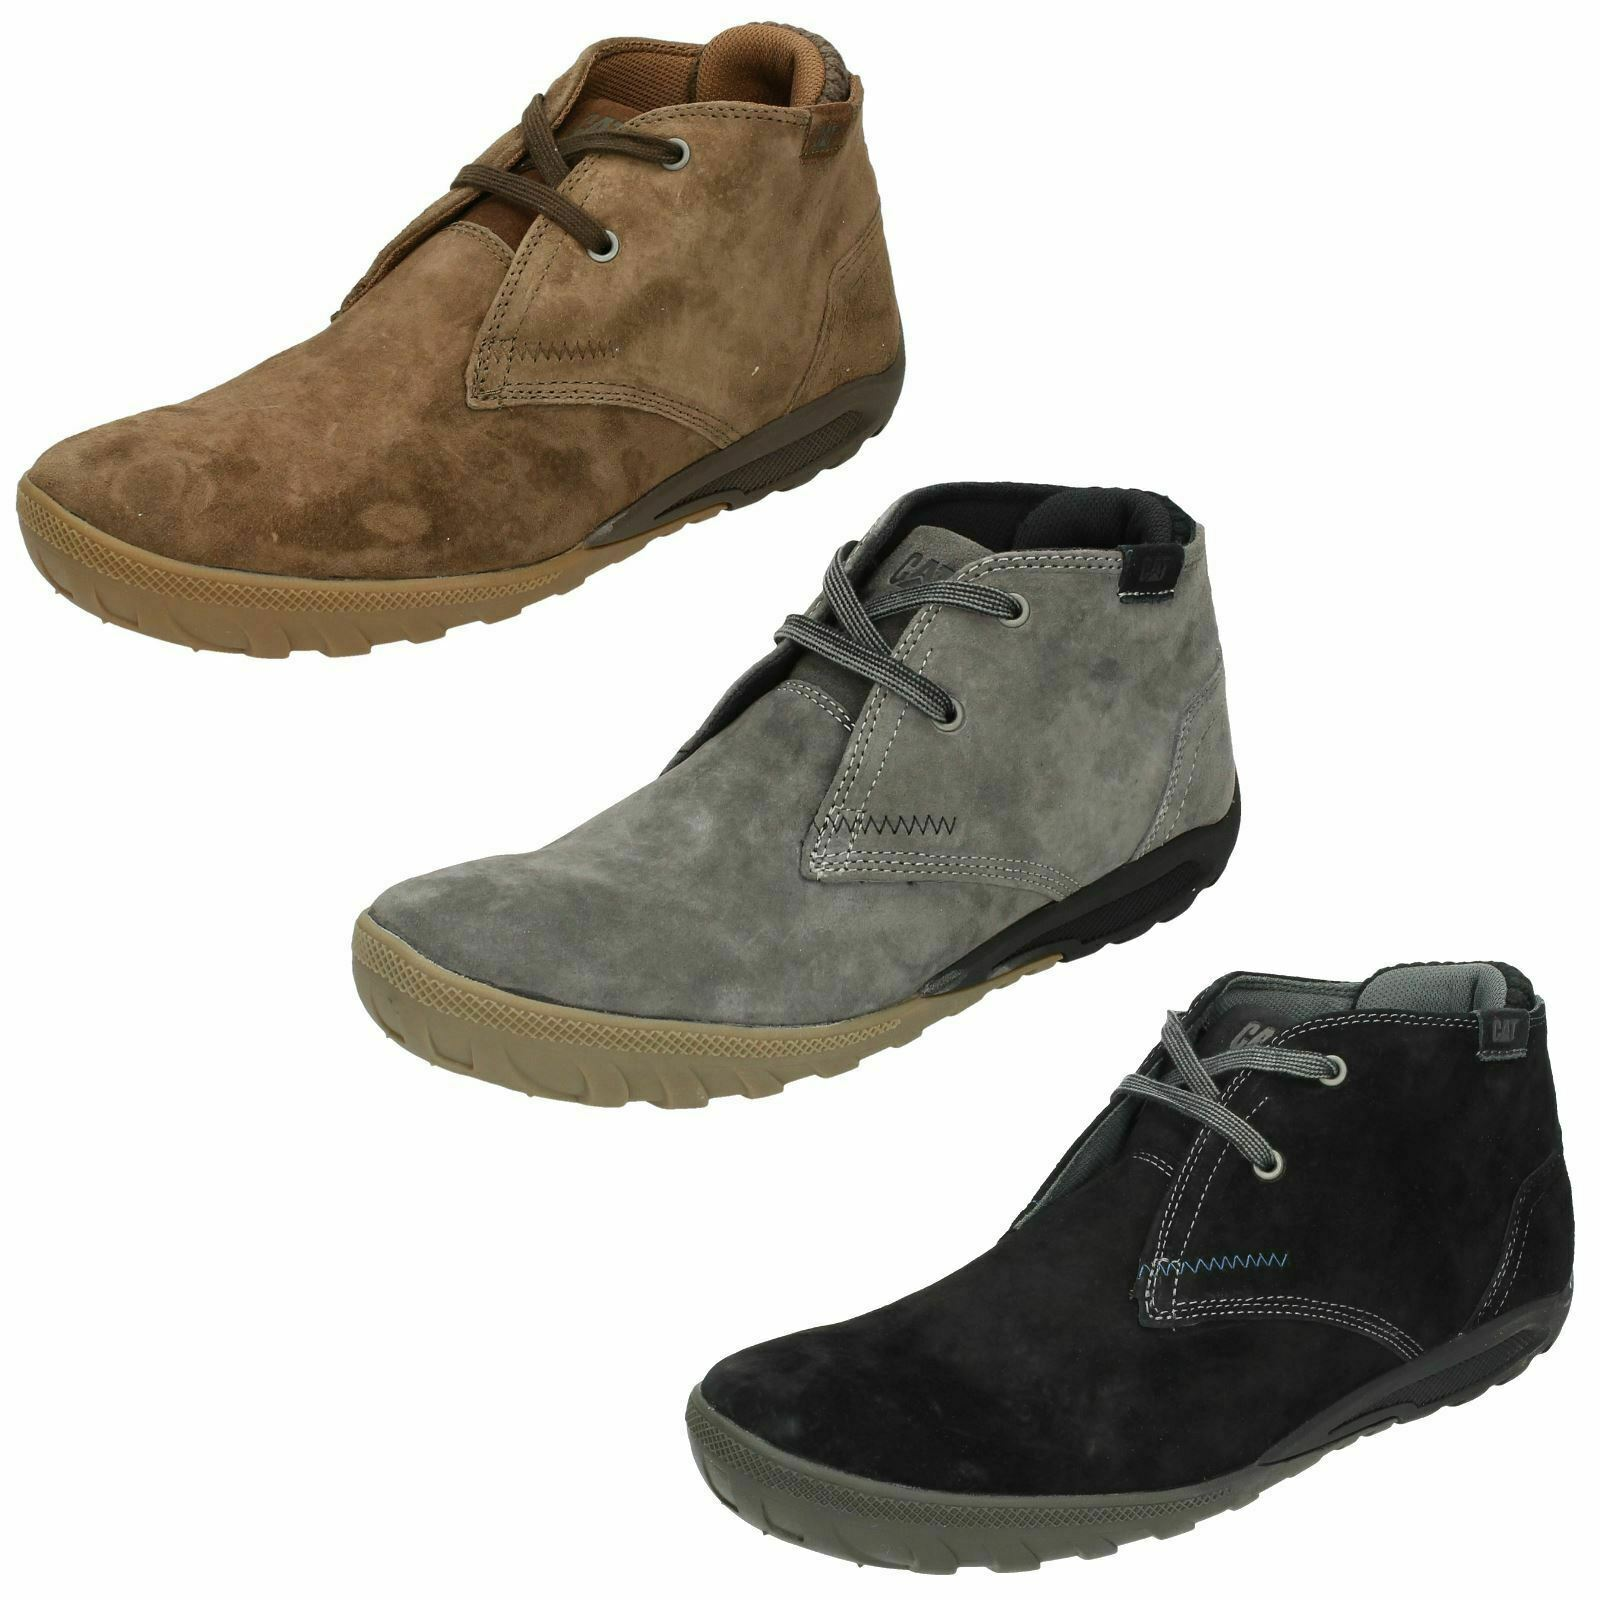 Mens Caterpillar Suede Leather Lace Up Comfy Work Shoes Ankle Boots : Crump Mid